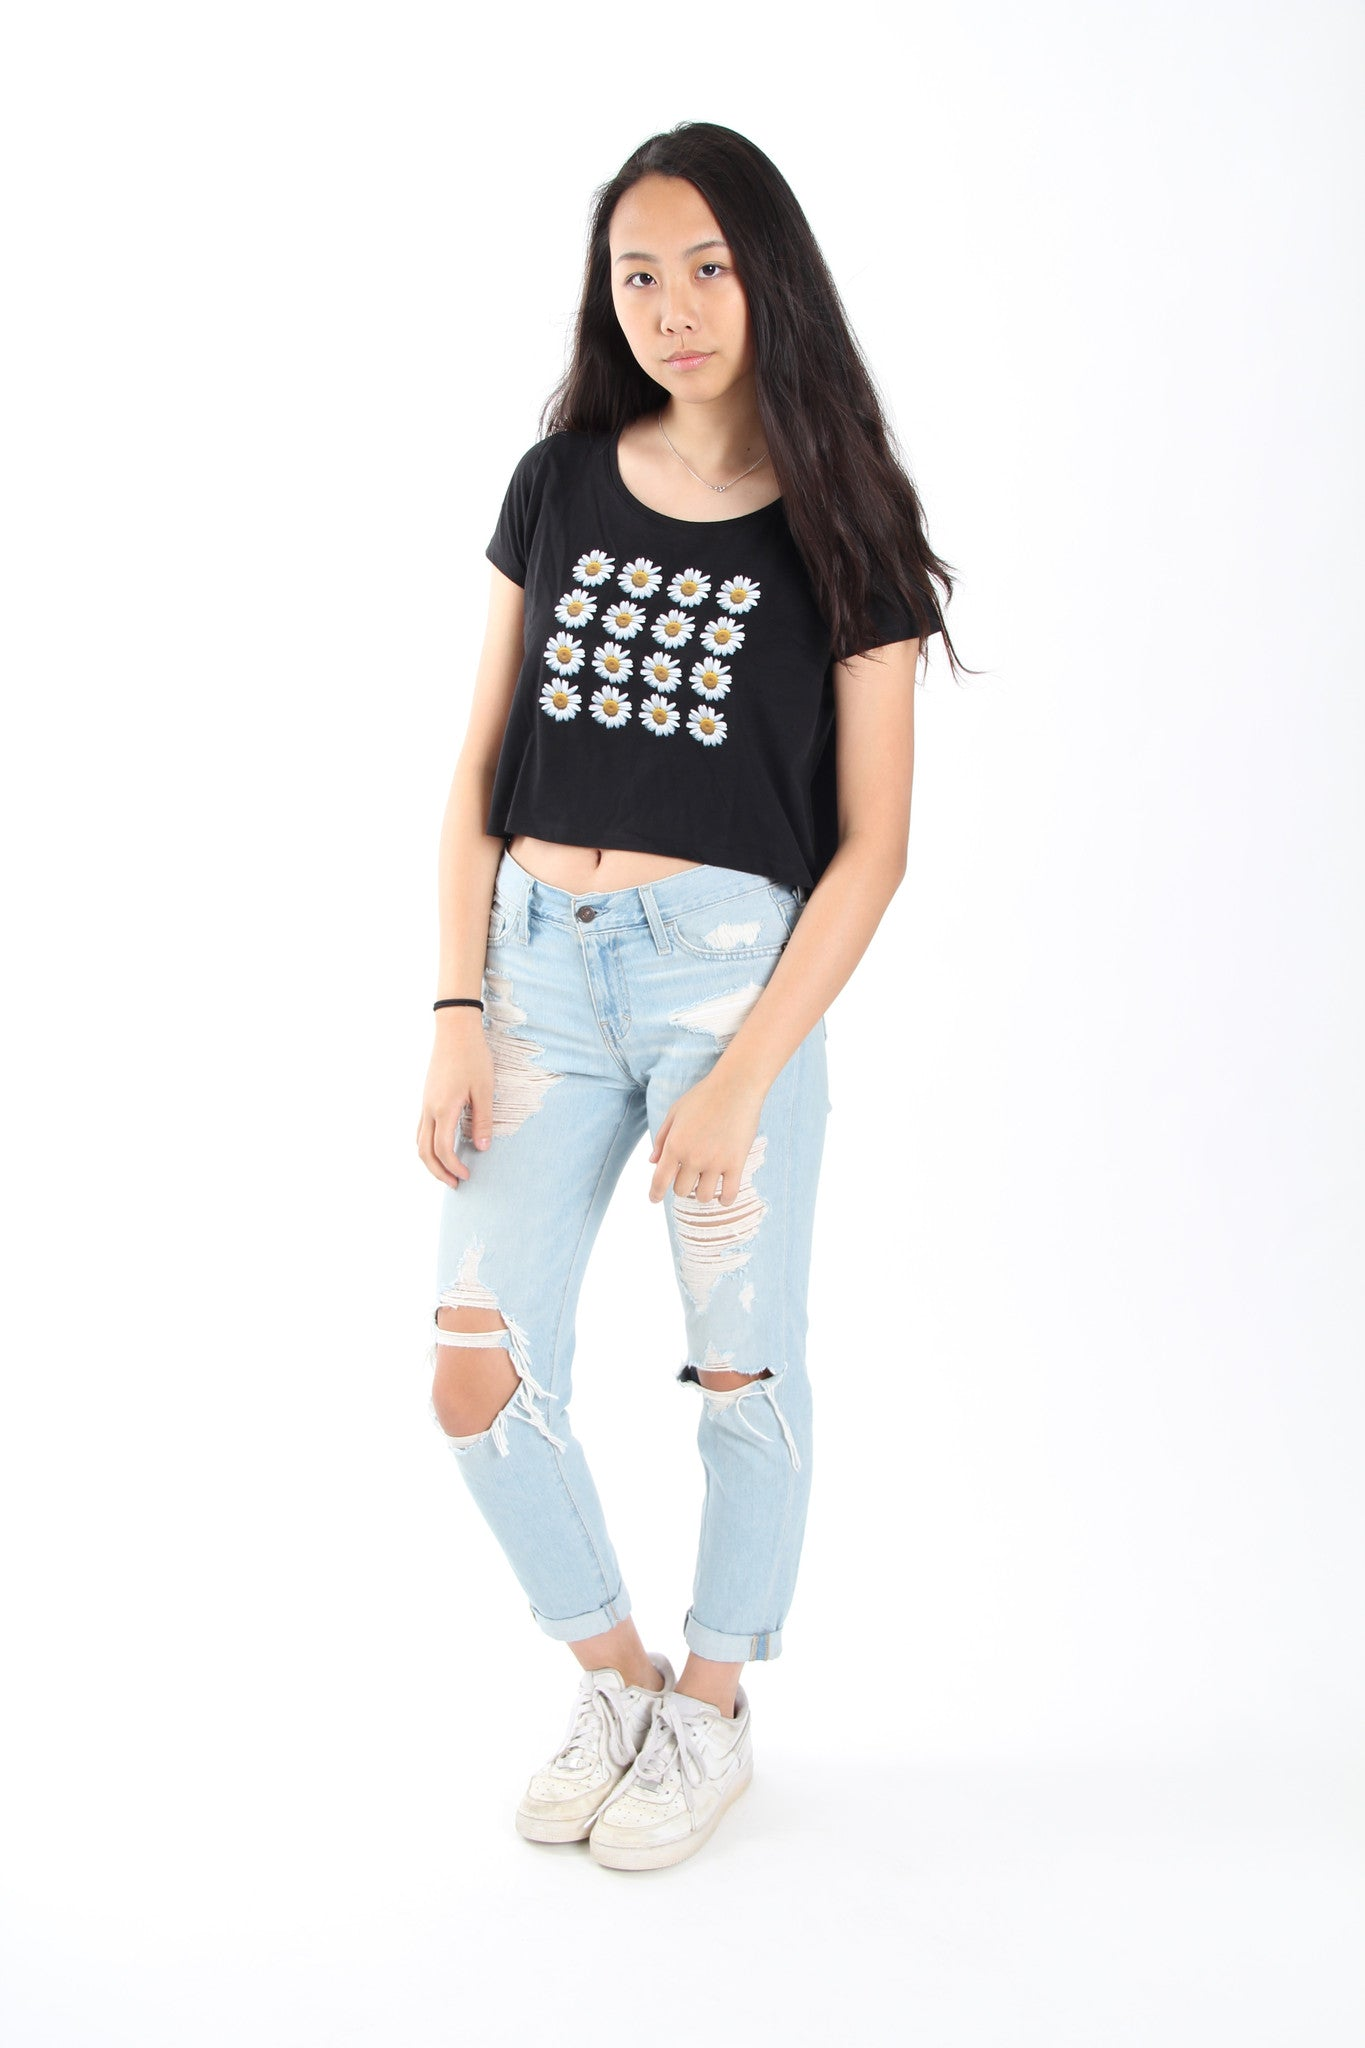 Daisy Rows Sleeved Crop Top